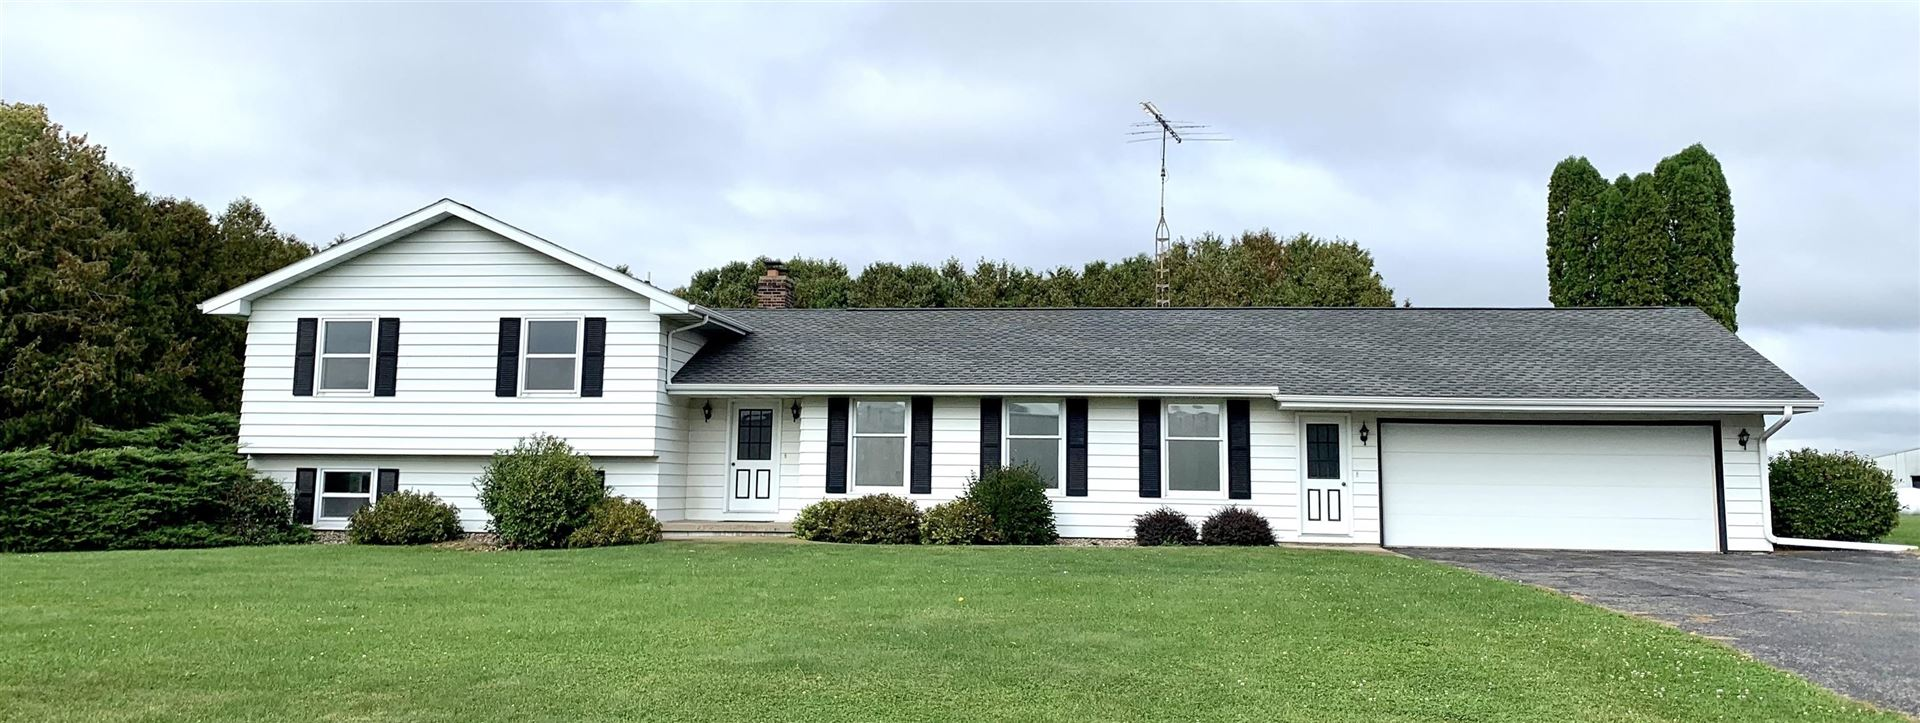 5468 County Road A, Lancaster, WI 53813 - #: 1921469